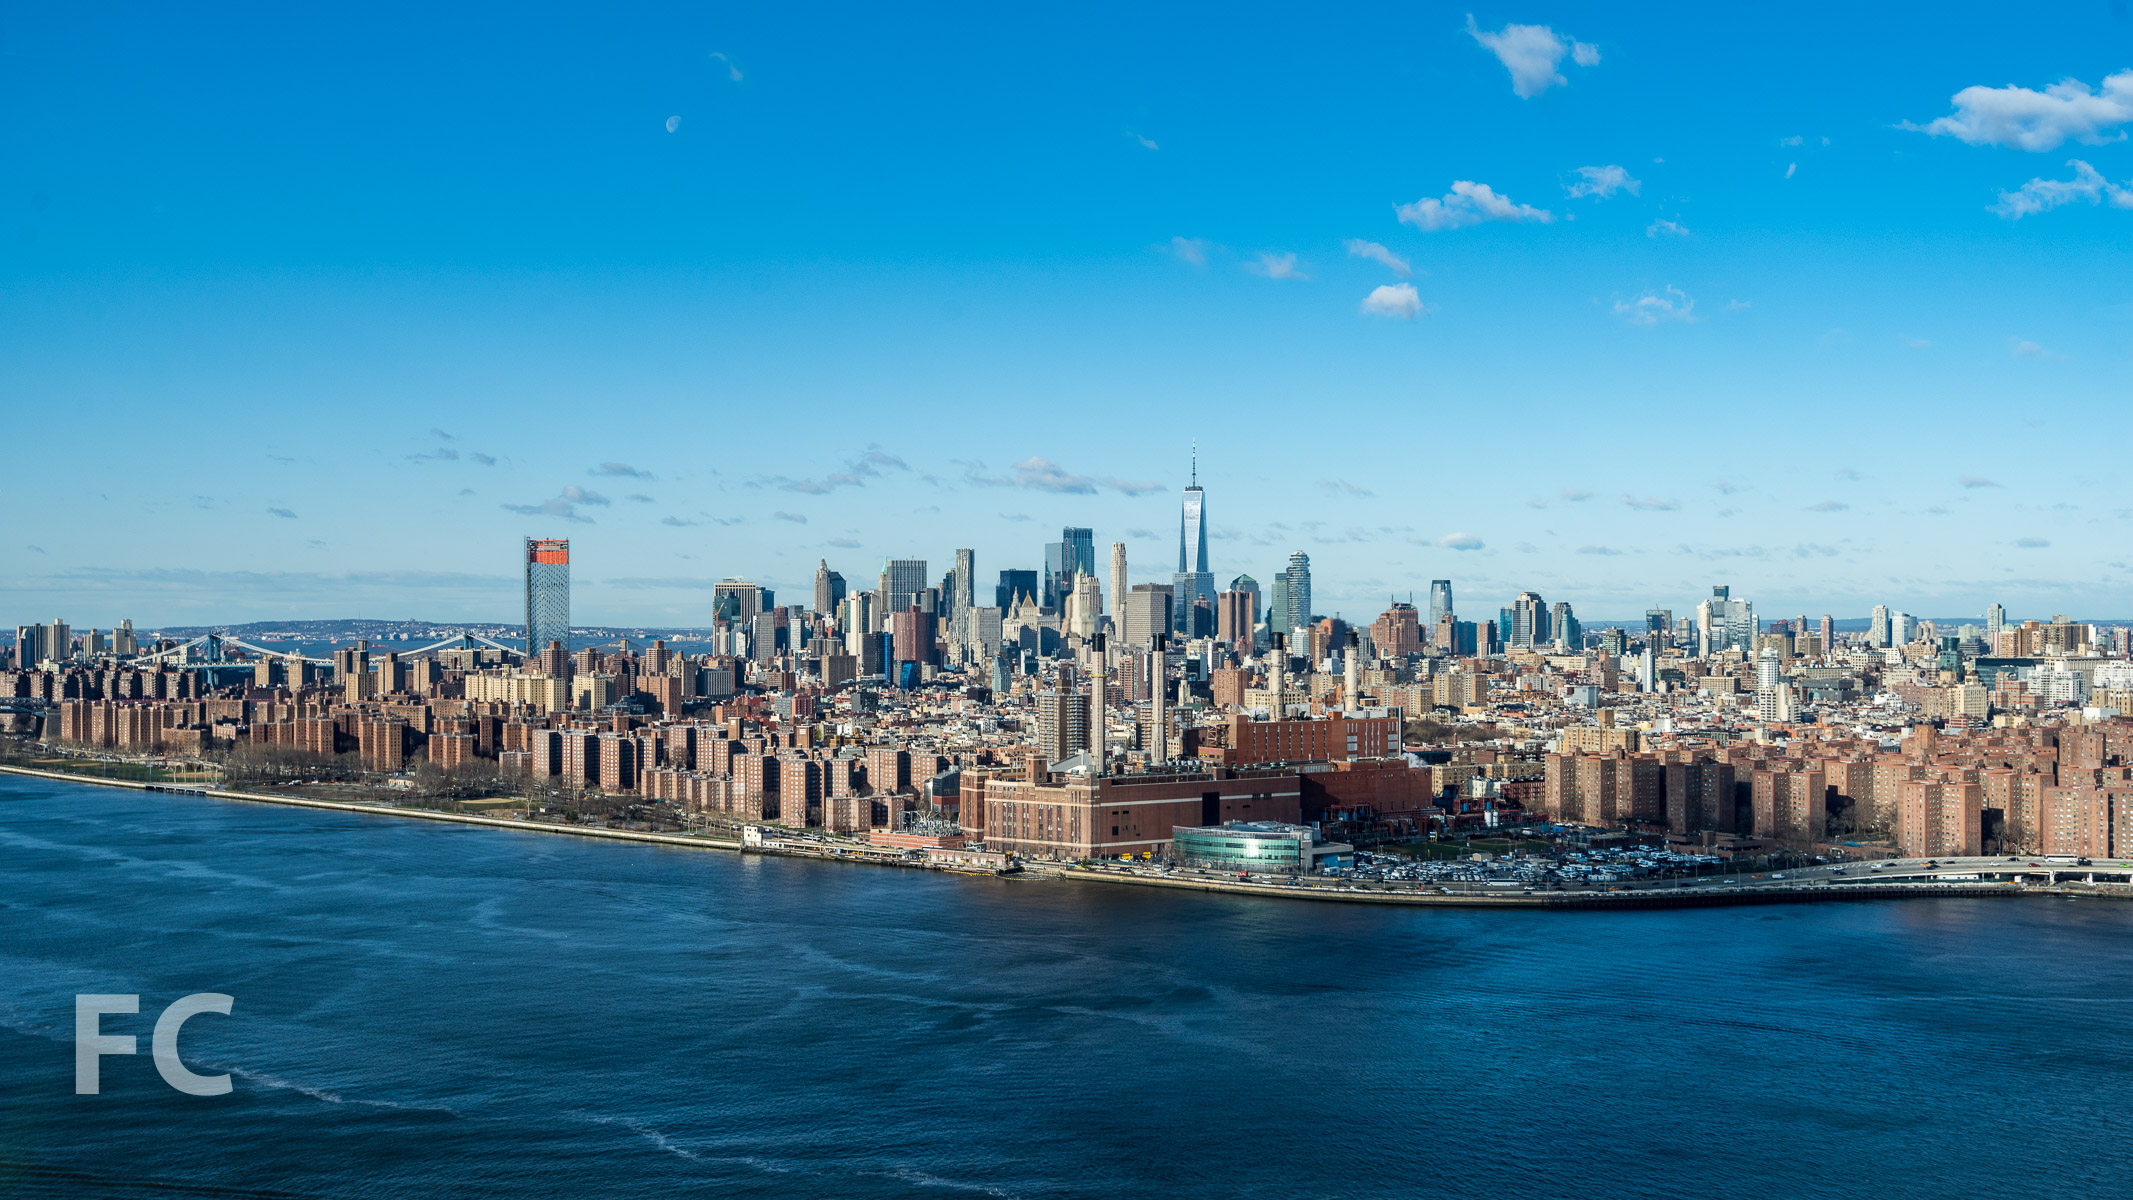 View of the Lower Manhattan skyline from the rooftop.